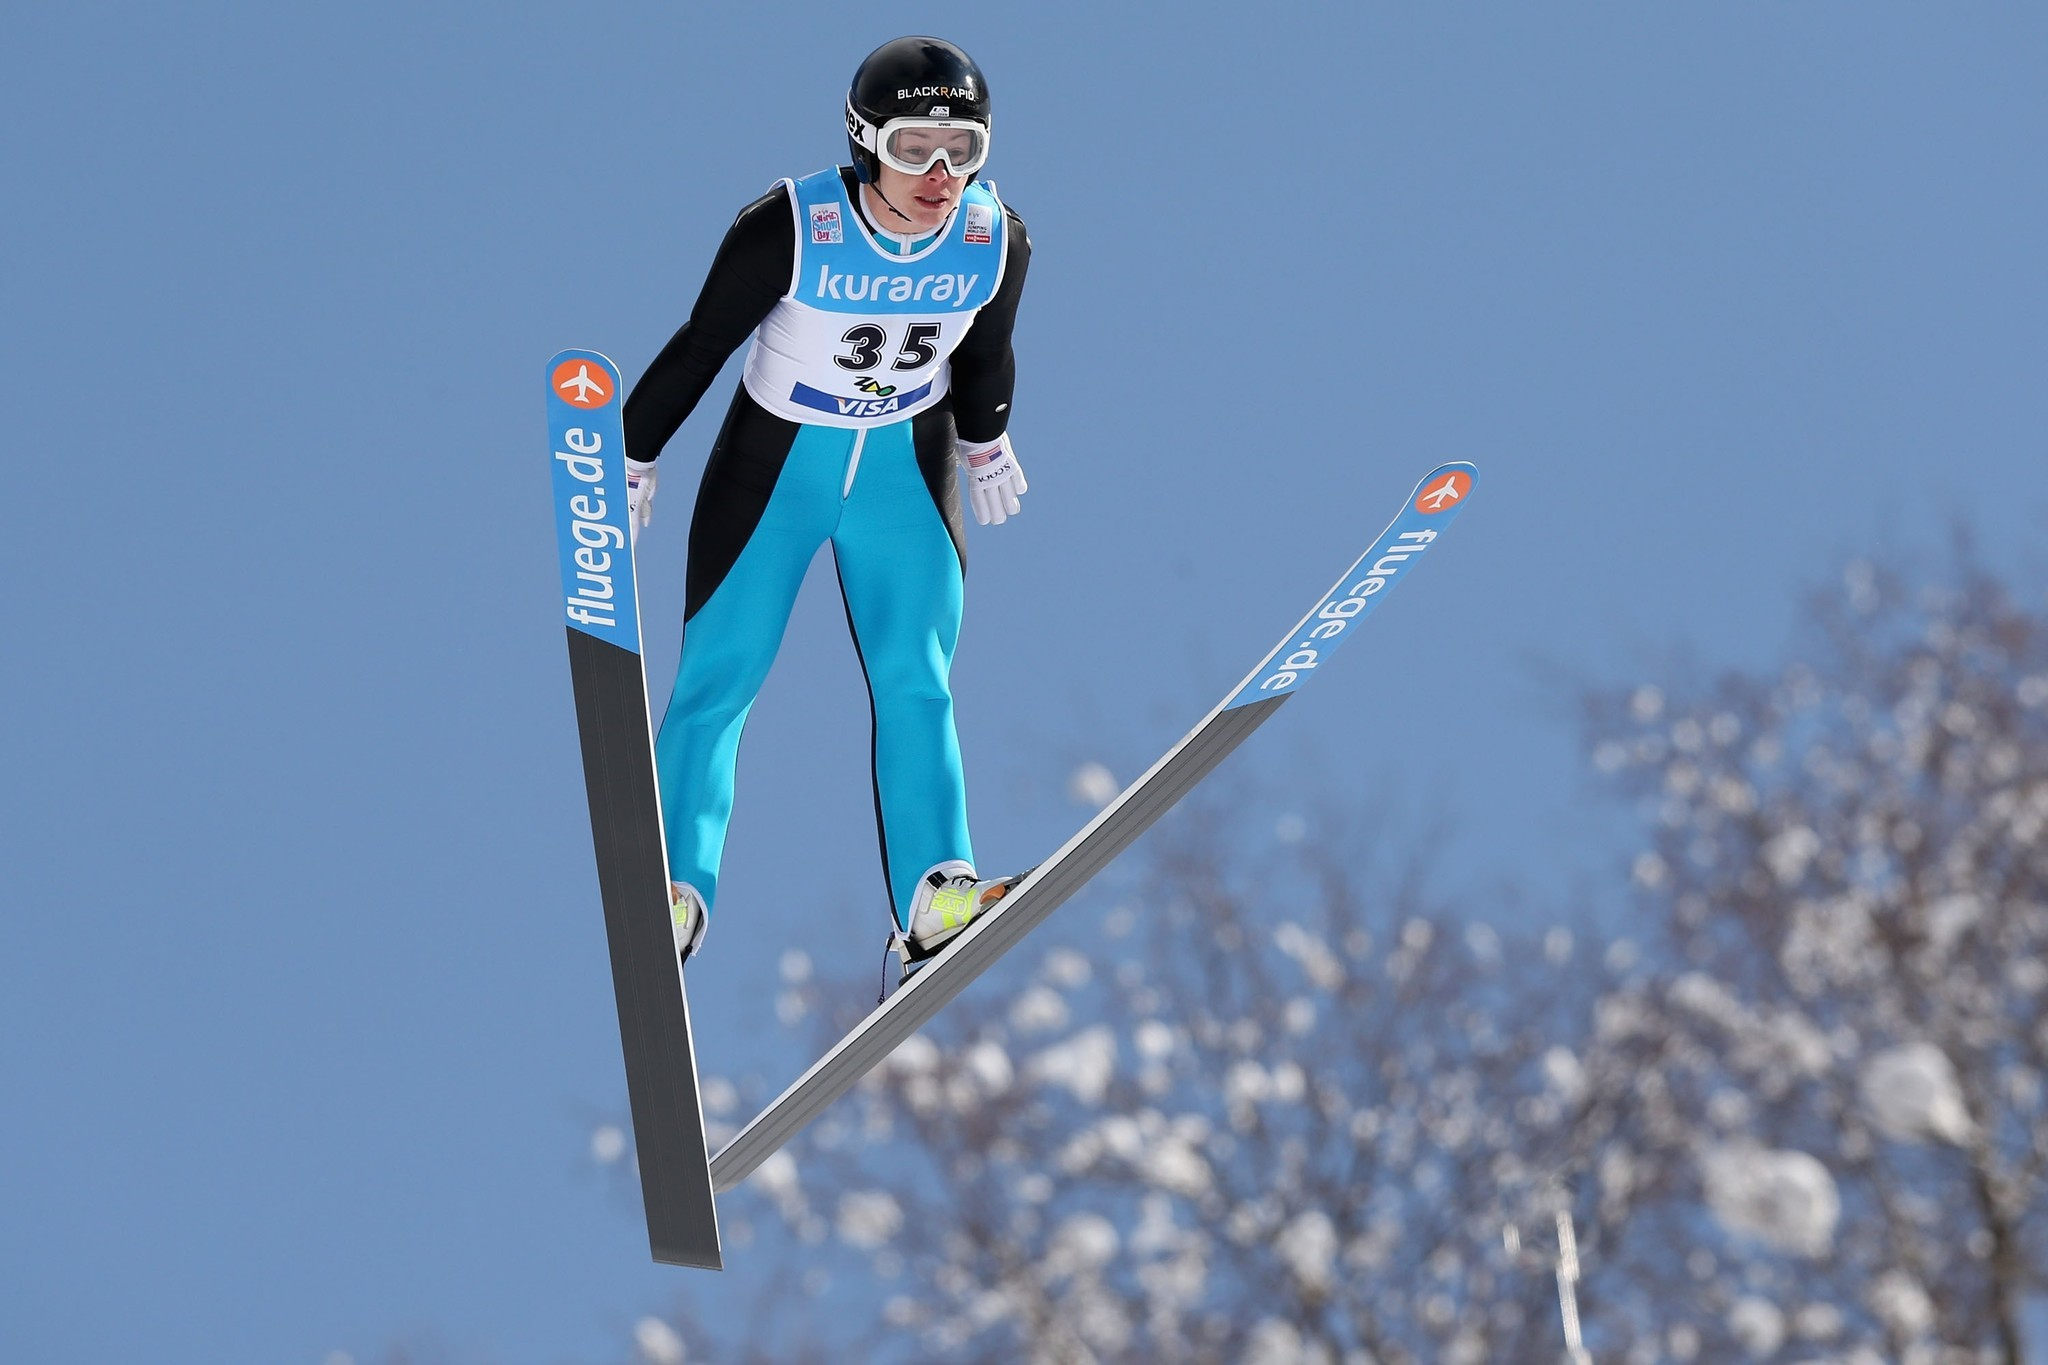 Brief Description of Ski Jumping